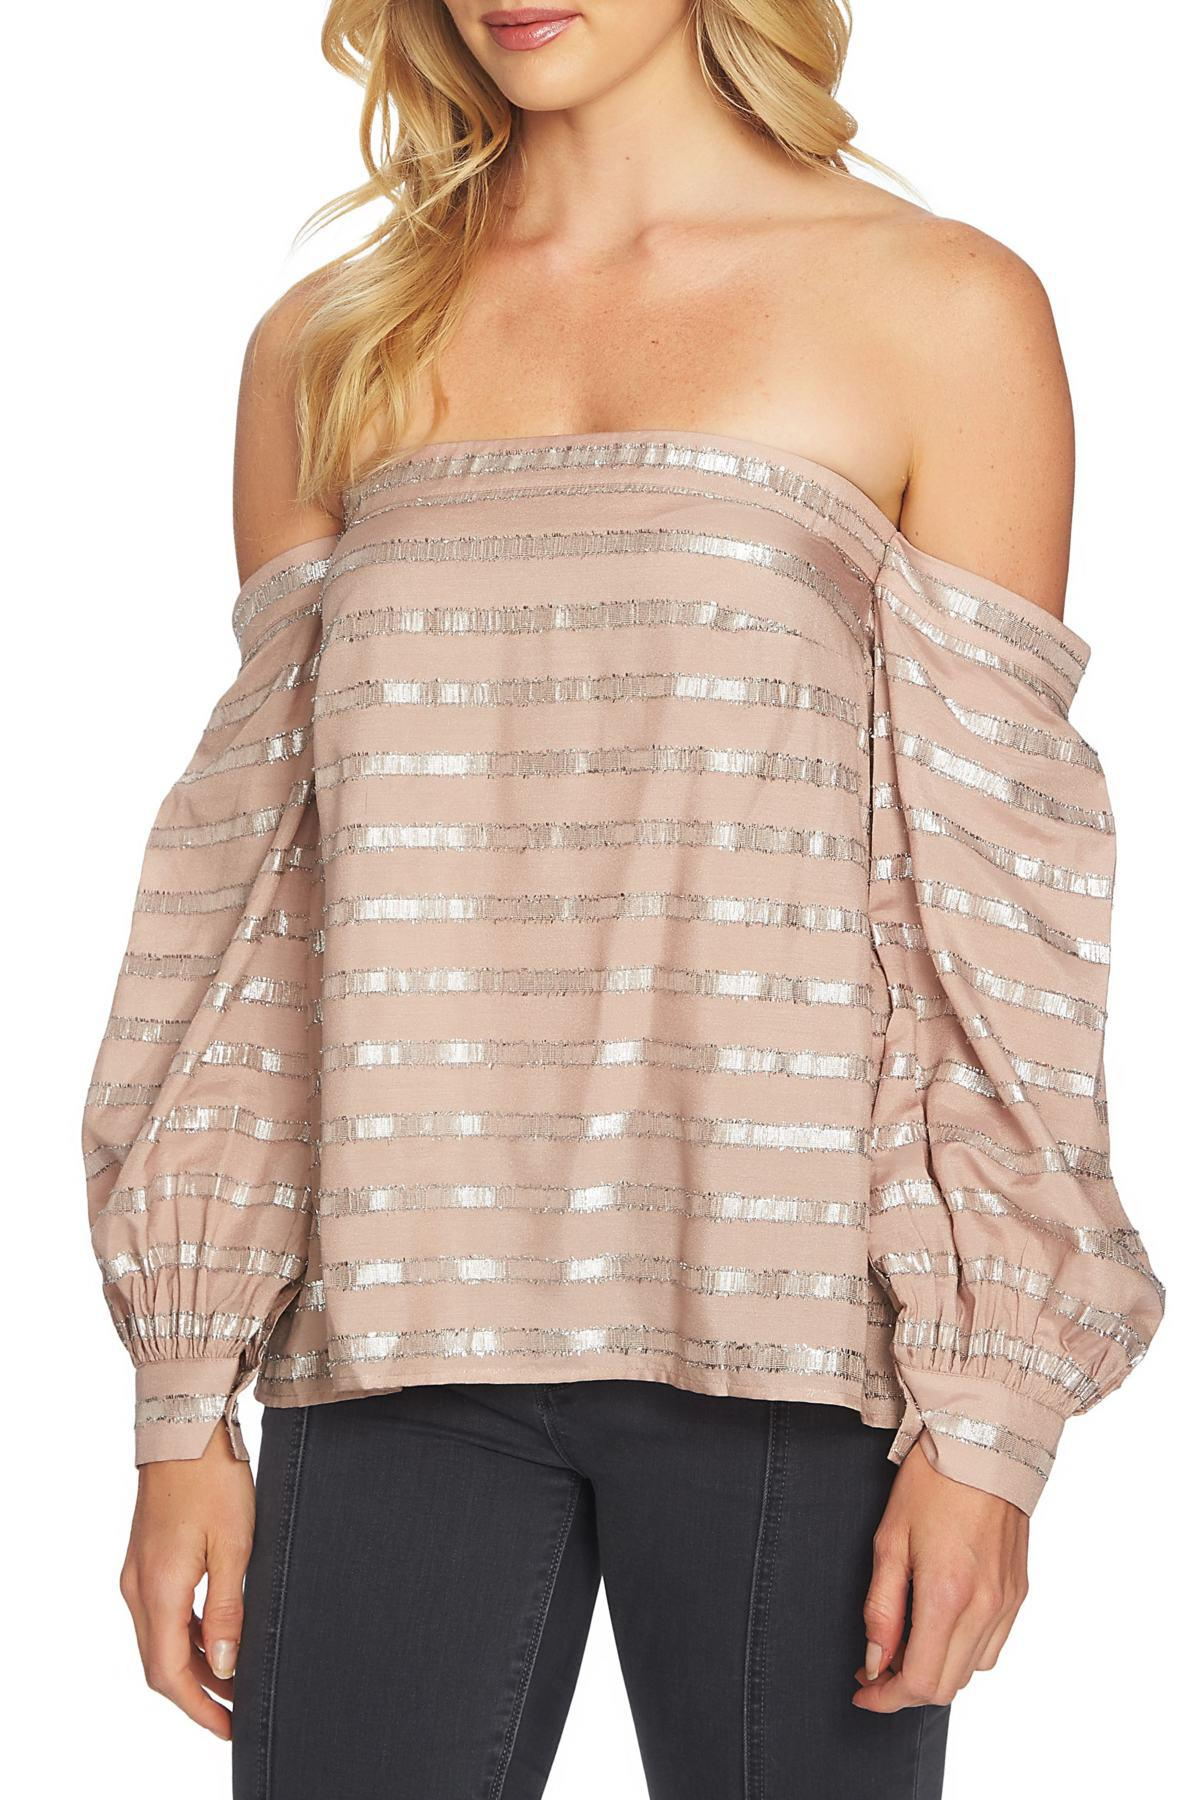 Lyst - 1.State Off The Shoulder Top 840026a41b94